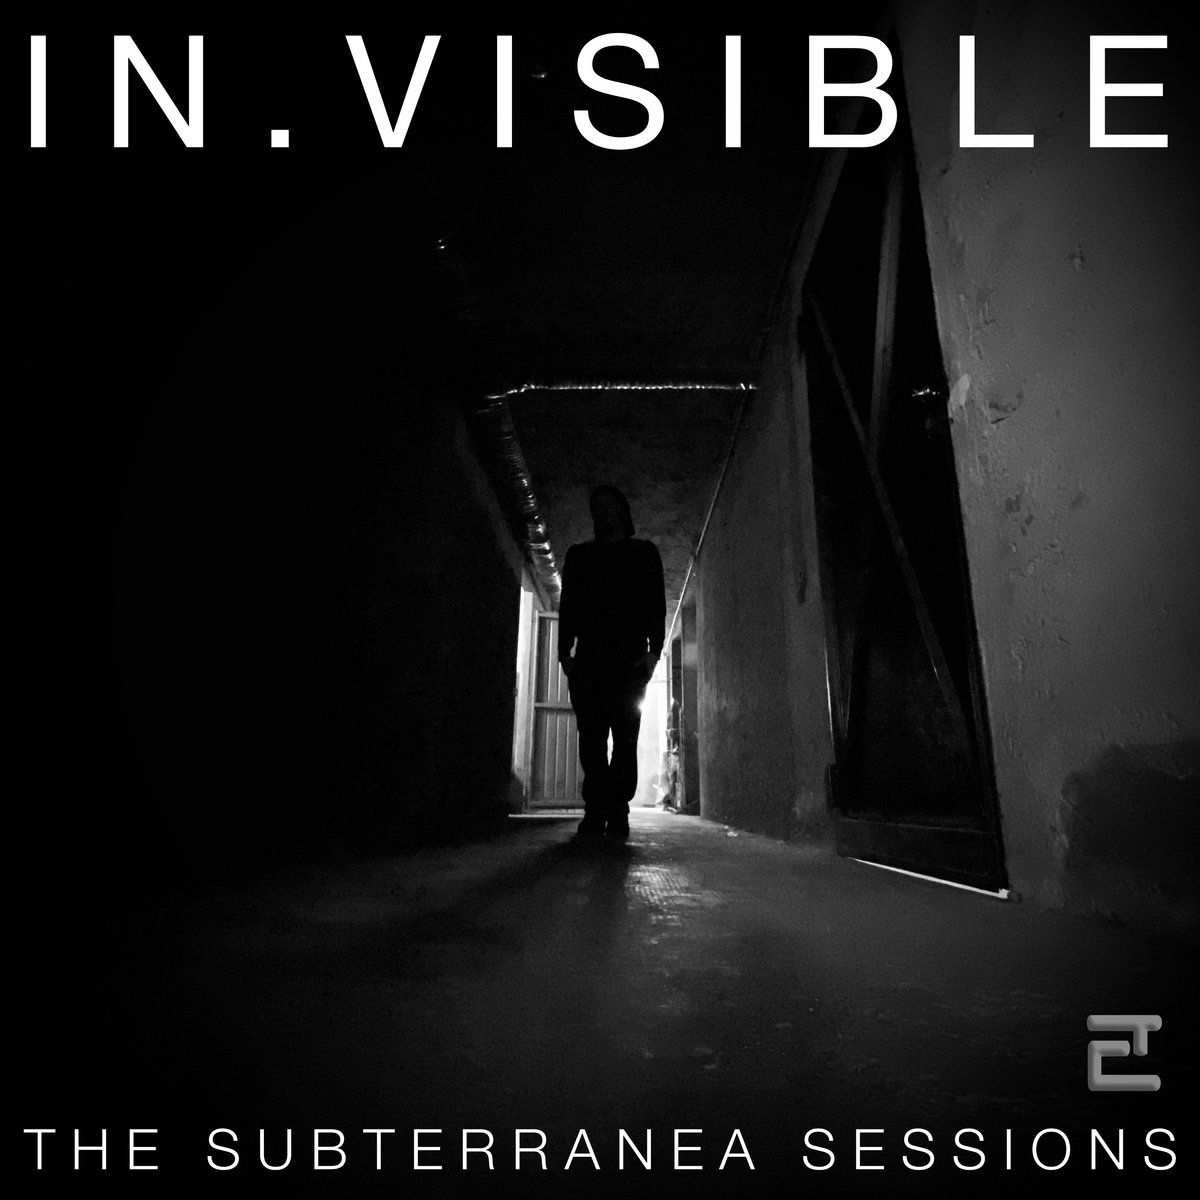 E96 (album) In.Visible: The Subterranea Sessions